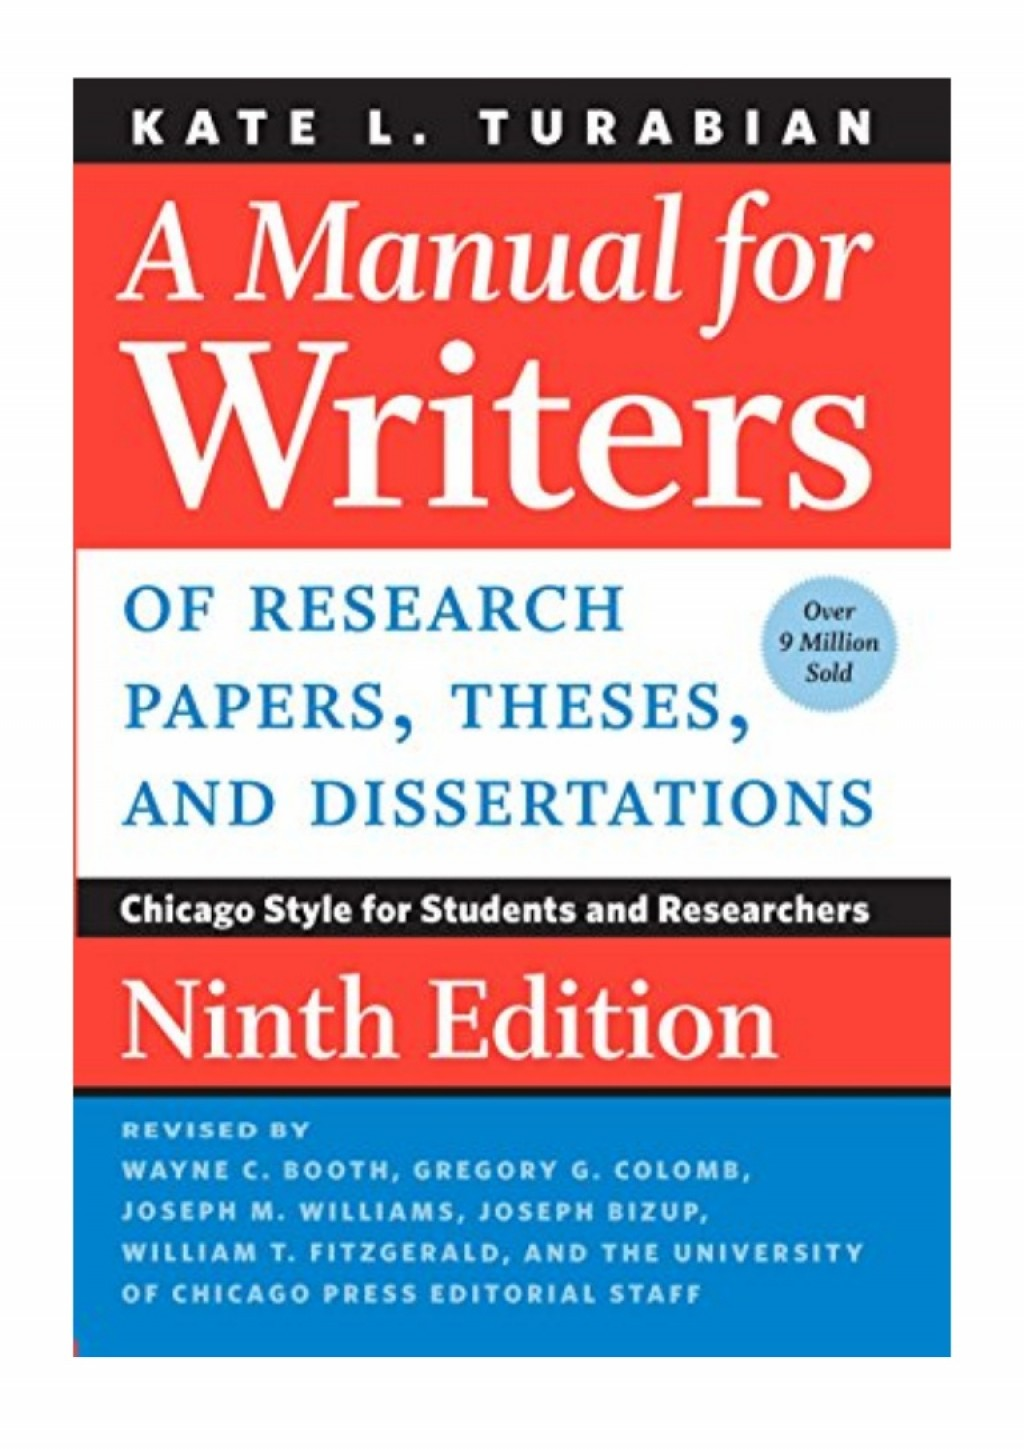 004 Manual For Writers Of Research Papers Theses And Dissertations 9th Edition Pdf B07cqgqjpy Amanualforwritersofresearchpapersthesesanddissertationsnintheditionbykatel Thumbnail Wonderful A Large